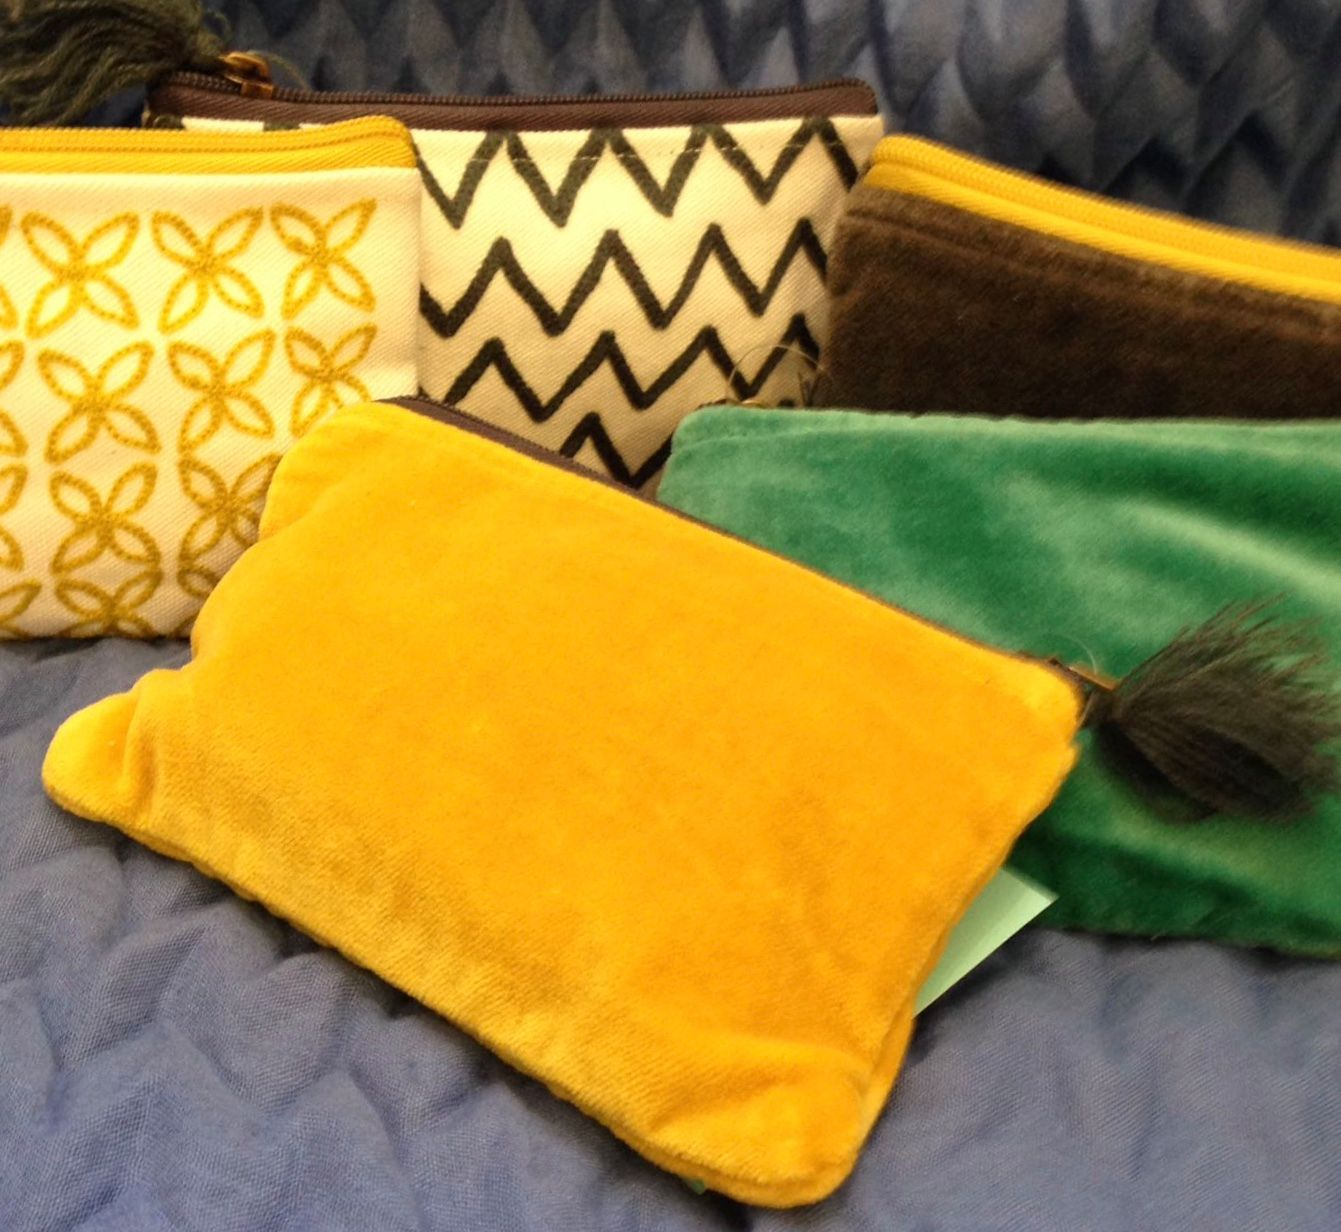 Pom's selection of velvet and embroidered purses